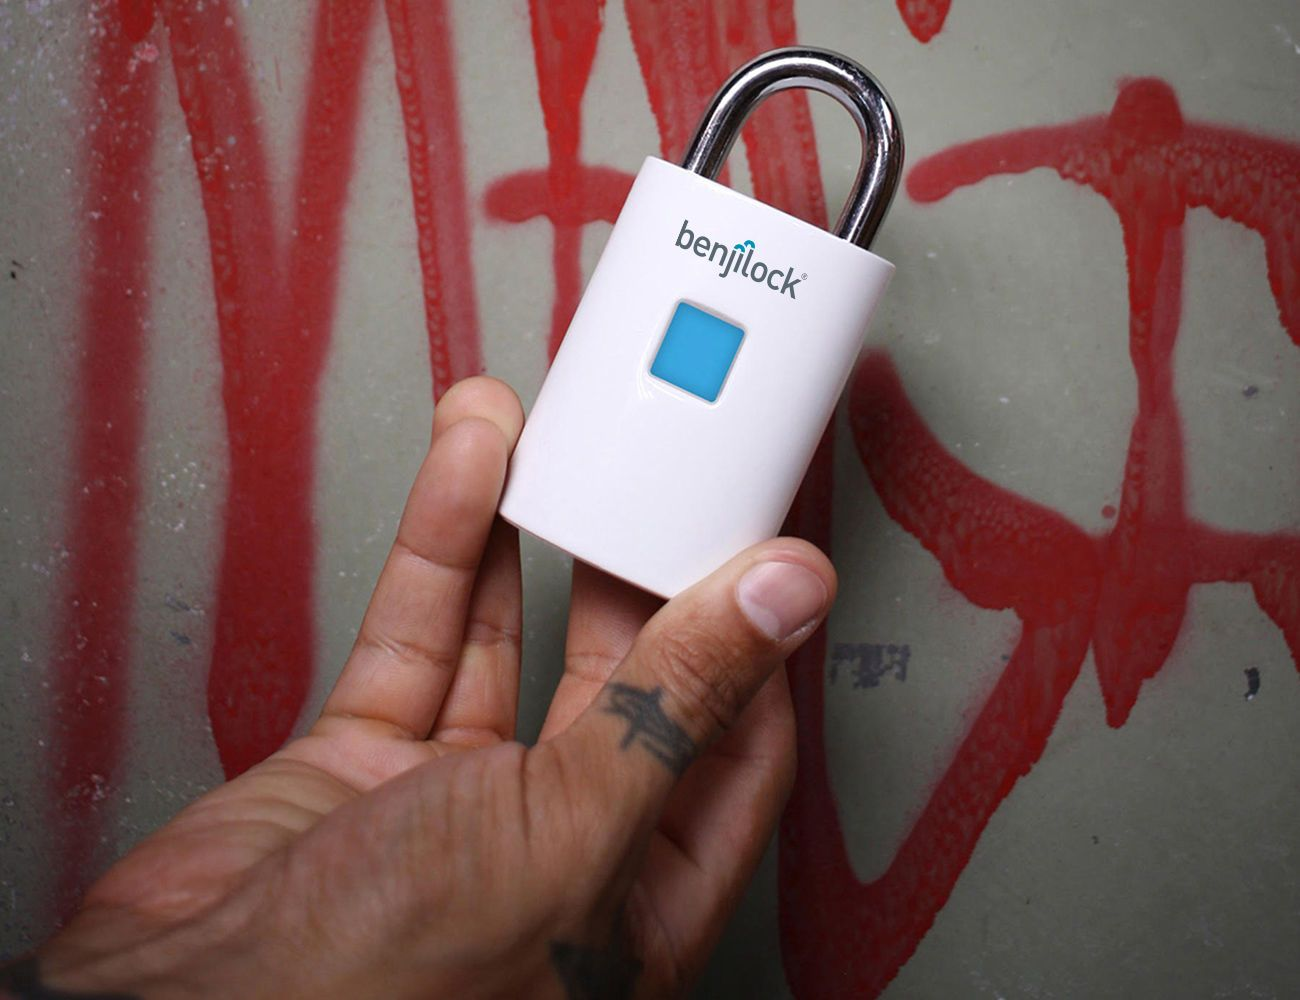 BenjiLock Rechargeable Fingerprint Padlock